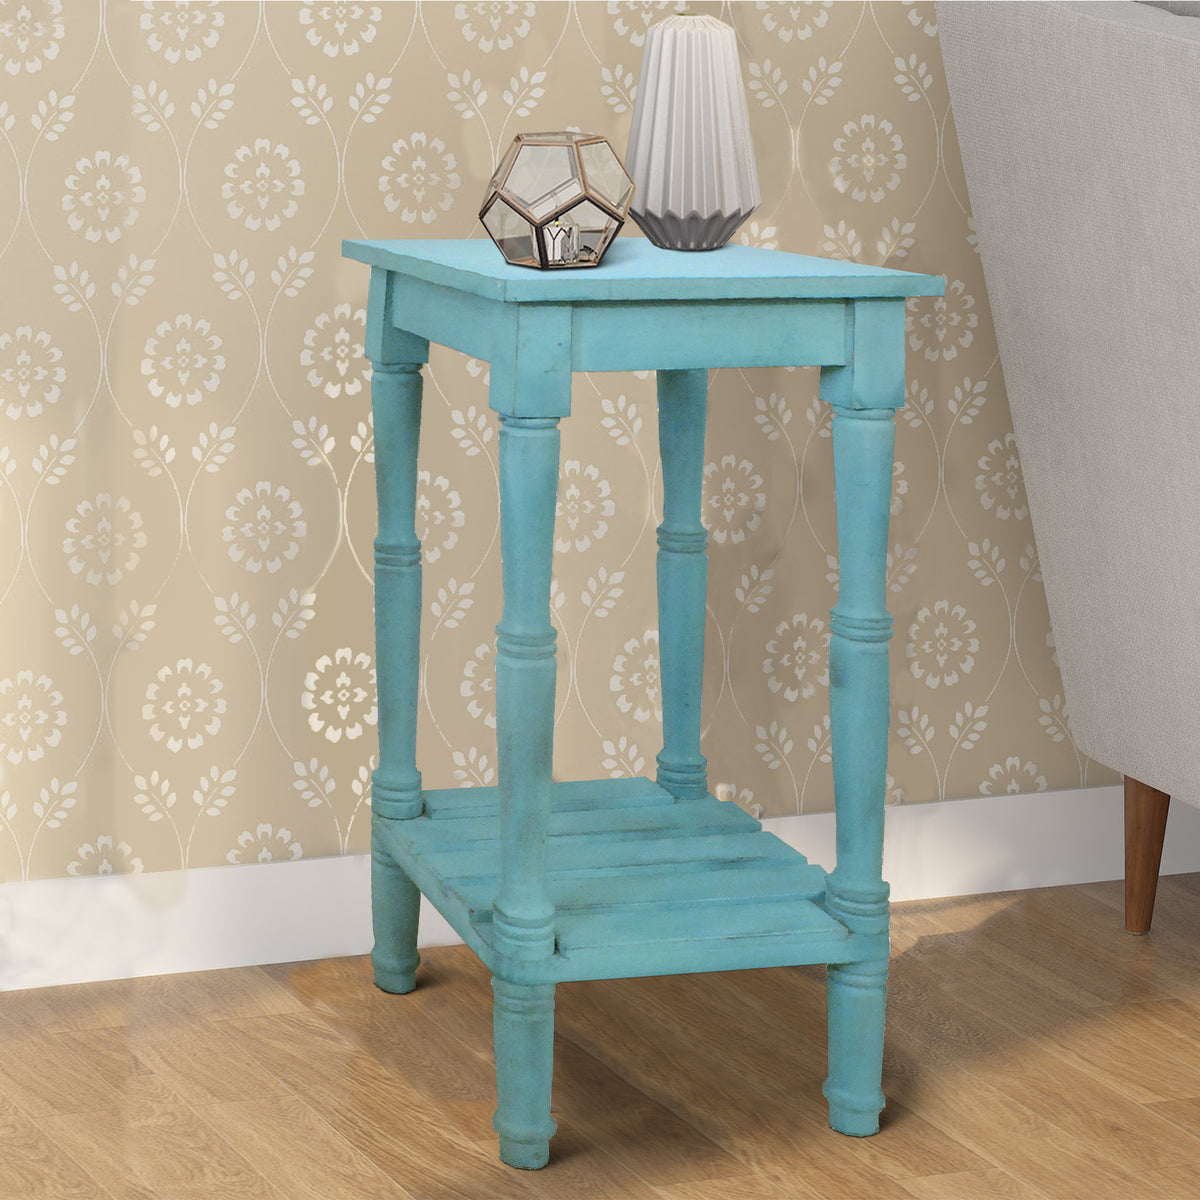 Benjara 29 Inch Mango Wood Side Table With Slatted Bottom Shelf Antique Blue Bm07541 Benzara Com